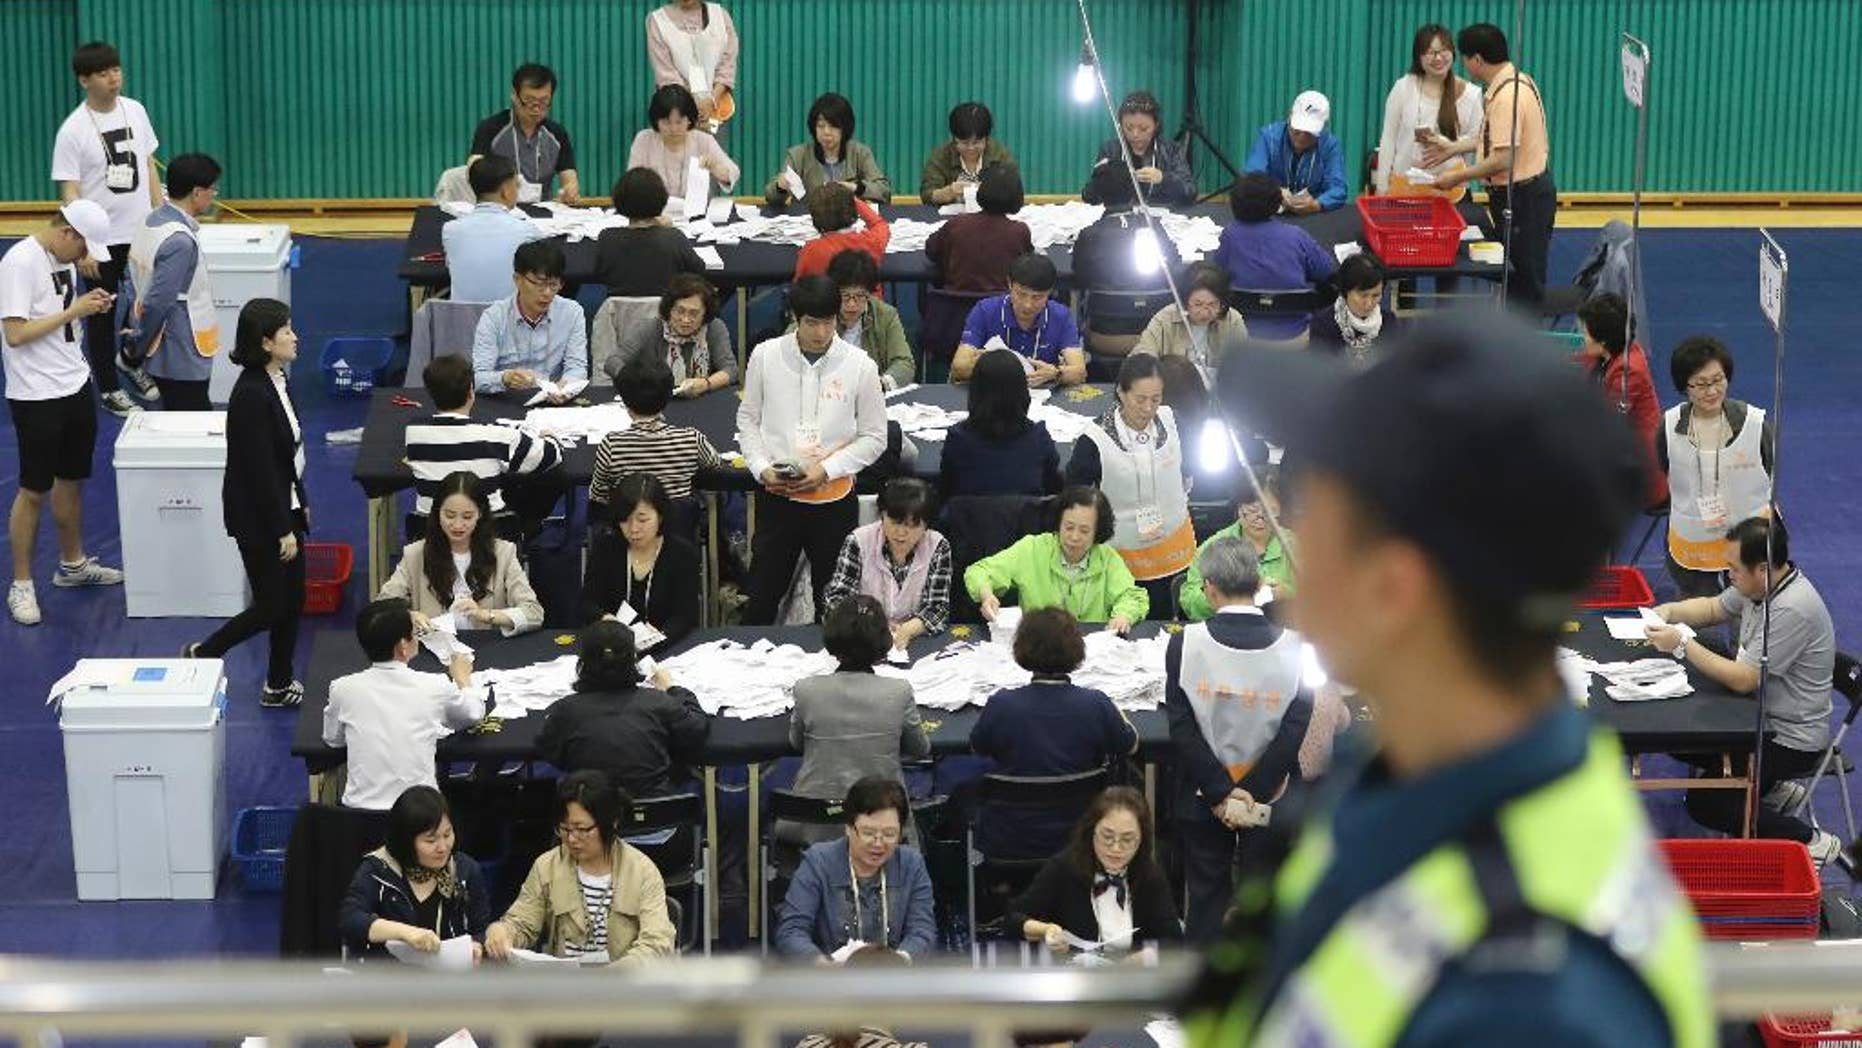 South Korean National Election Commission officials sort out ballots in the country's presidential election as a police officer stand guard in Seoul, South Korea, Tuesday, May 9, 2017. Two major challengers for South Korean president, a conservative and a centrist, conceded defeat Tuesday, paving the way for liberal Moon Jae-in to claim victory in an election that followed months of political turmoil caused by ousted President Park Geun-hye's corruption scandal. (AP Photo/Lee Jin-man)